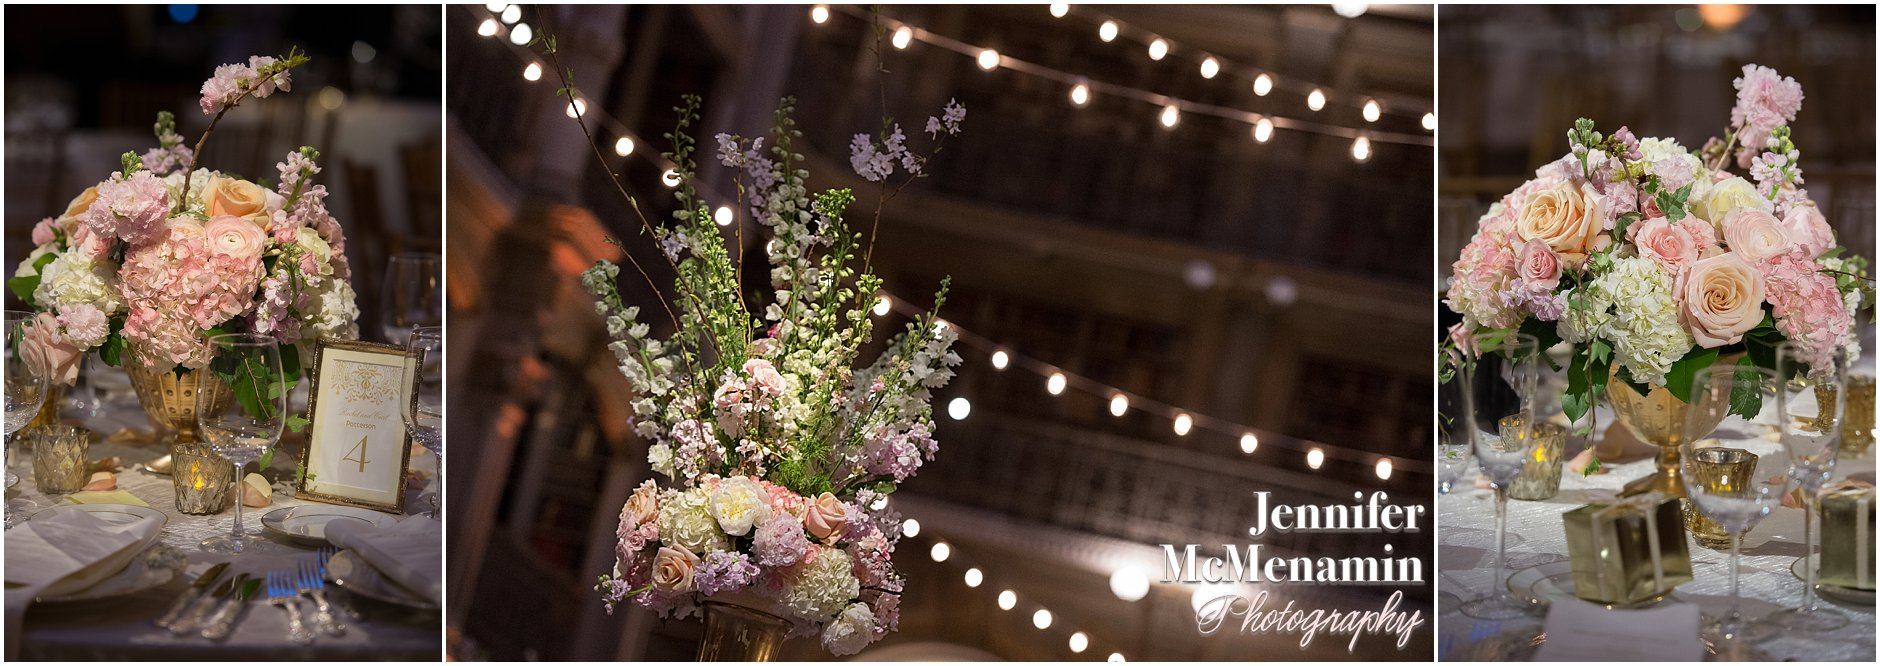 064-Peabody-Library-Wedding_WilsonPatterson_02535-0529_Jennifer-McMenamin-Photography